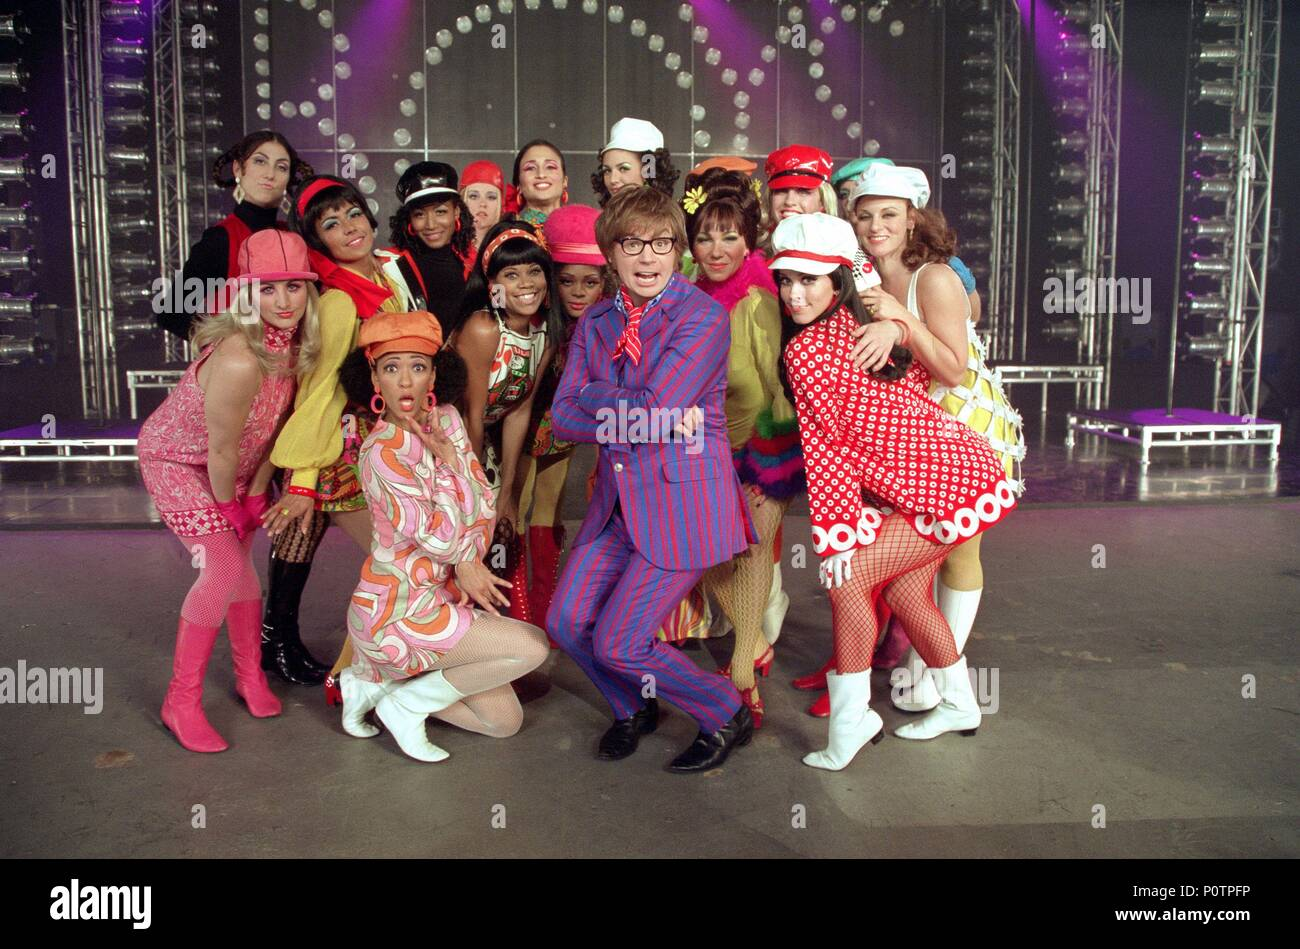 Original Film Title: AUSTIN POWERS IN GOLDMEMBER.  English Title: AUSTIN POWERS: GOLDMEMBER.  Film Director: M. JAY ROACH.  Year: 2002.  Stars: MIKE MYERS. Credit: NEW LINE CINEMA / Album - Stock Image